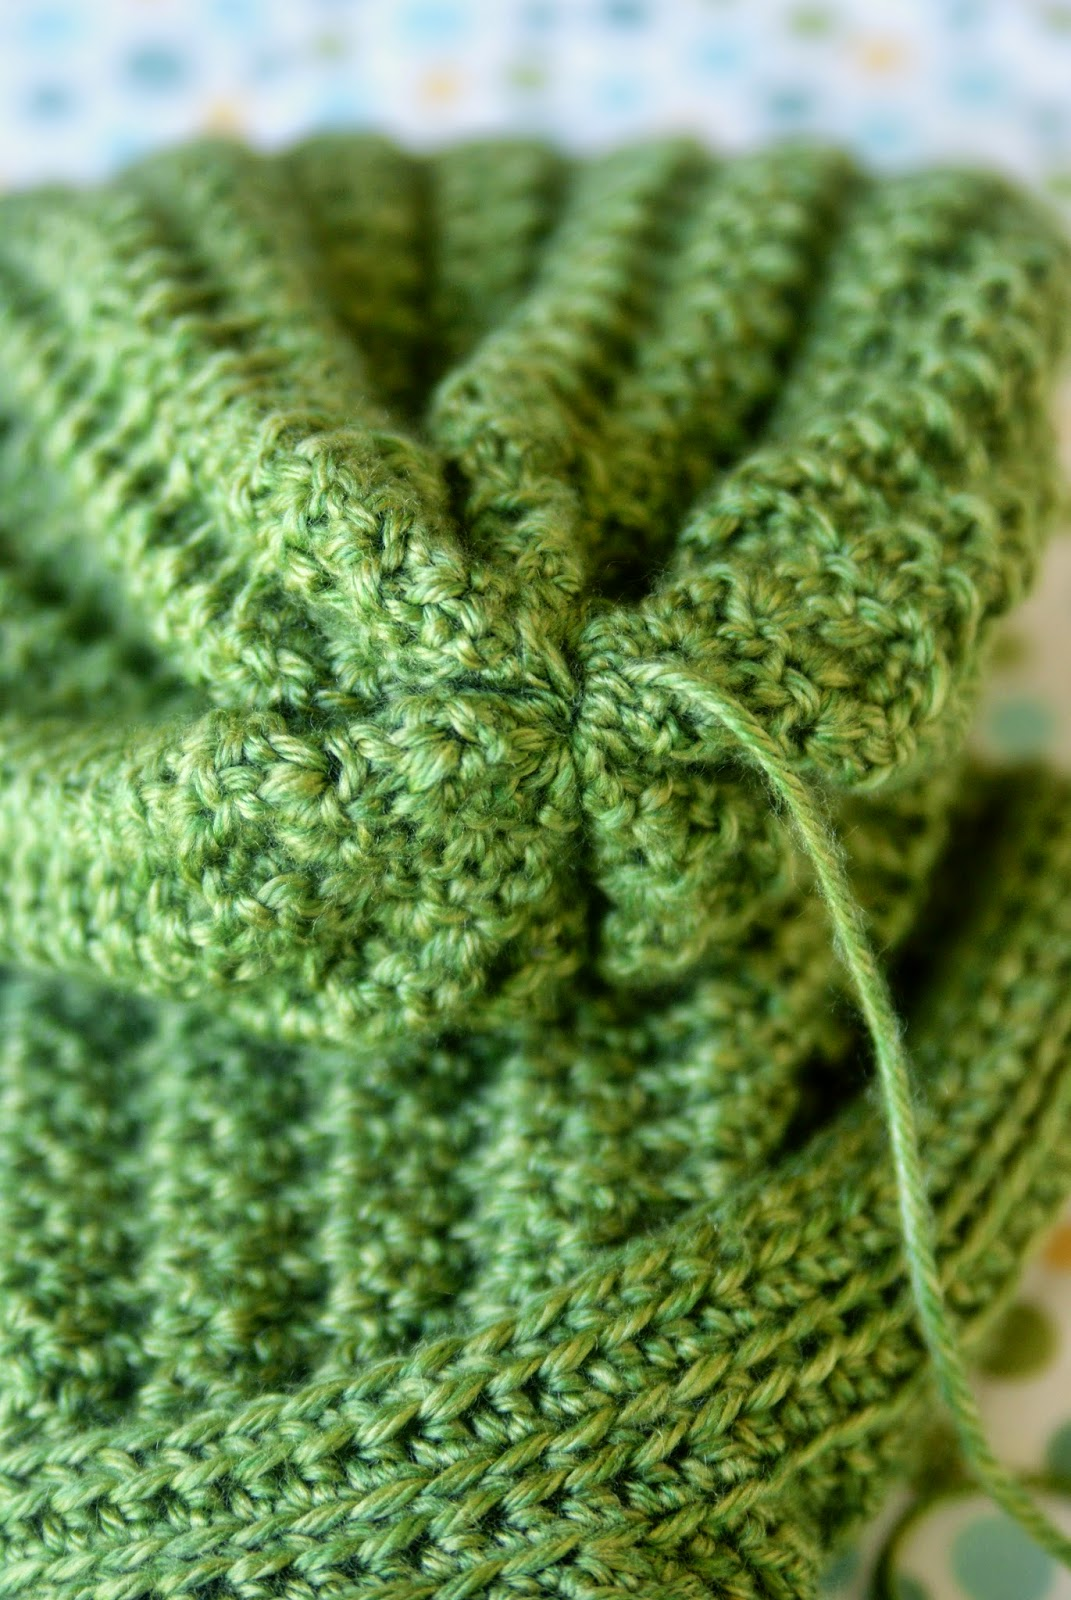 Crochet Stitches Tight : Pull yarn tight and cross over hole. Stitch the hole closed. Tie off ...